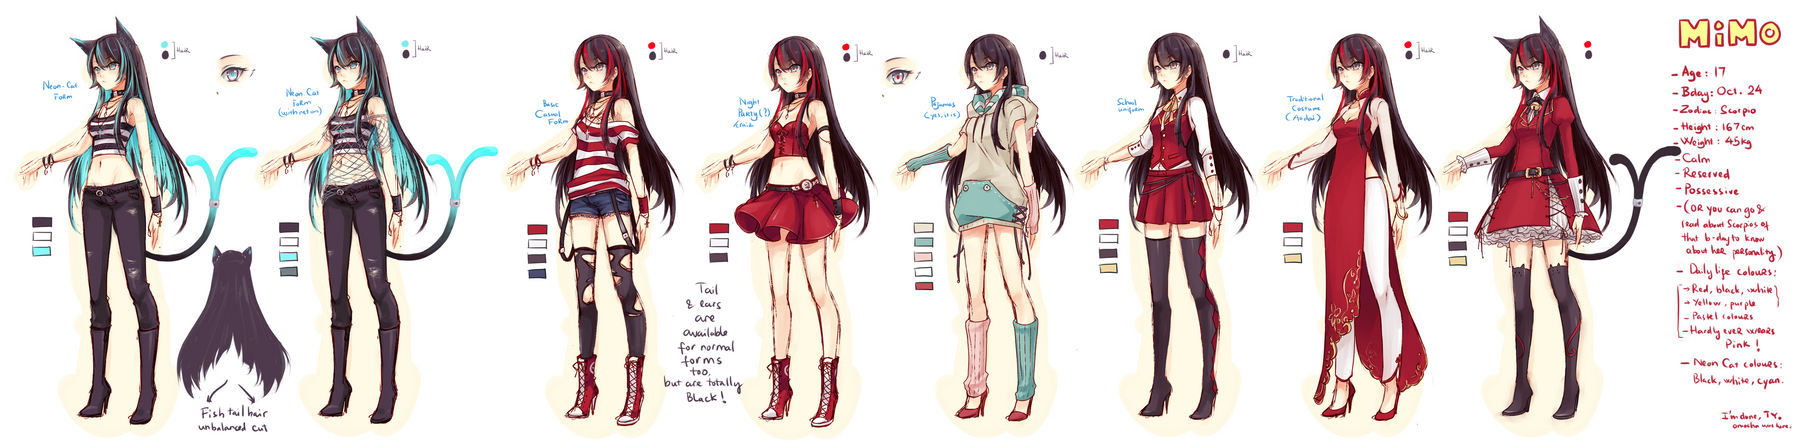 Mascot: Mimo's outfit references